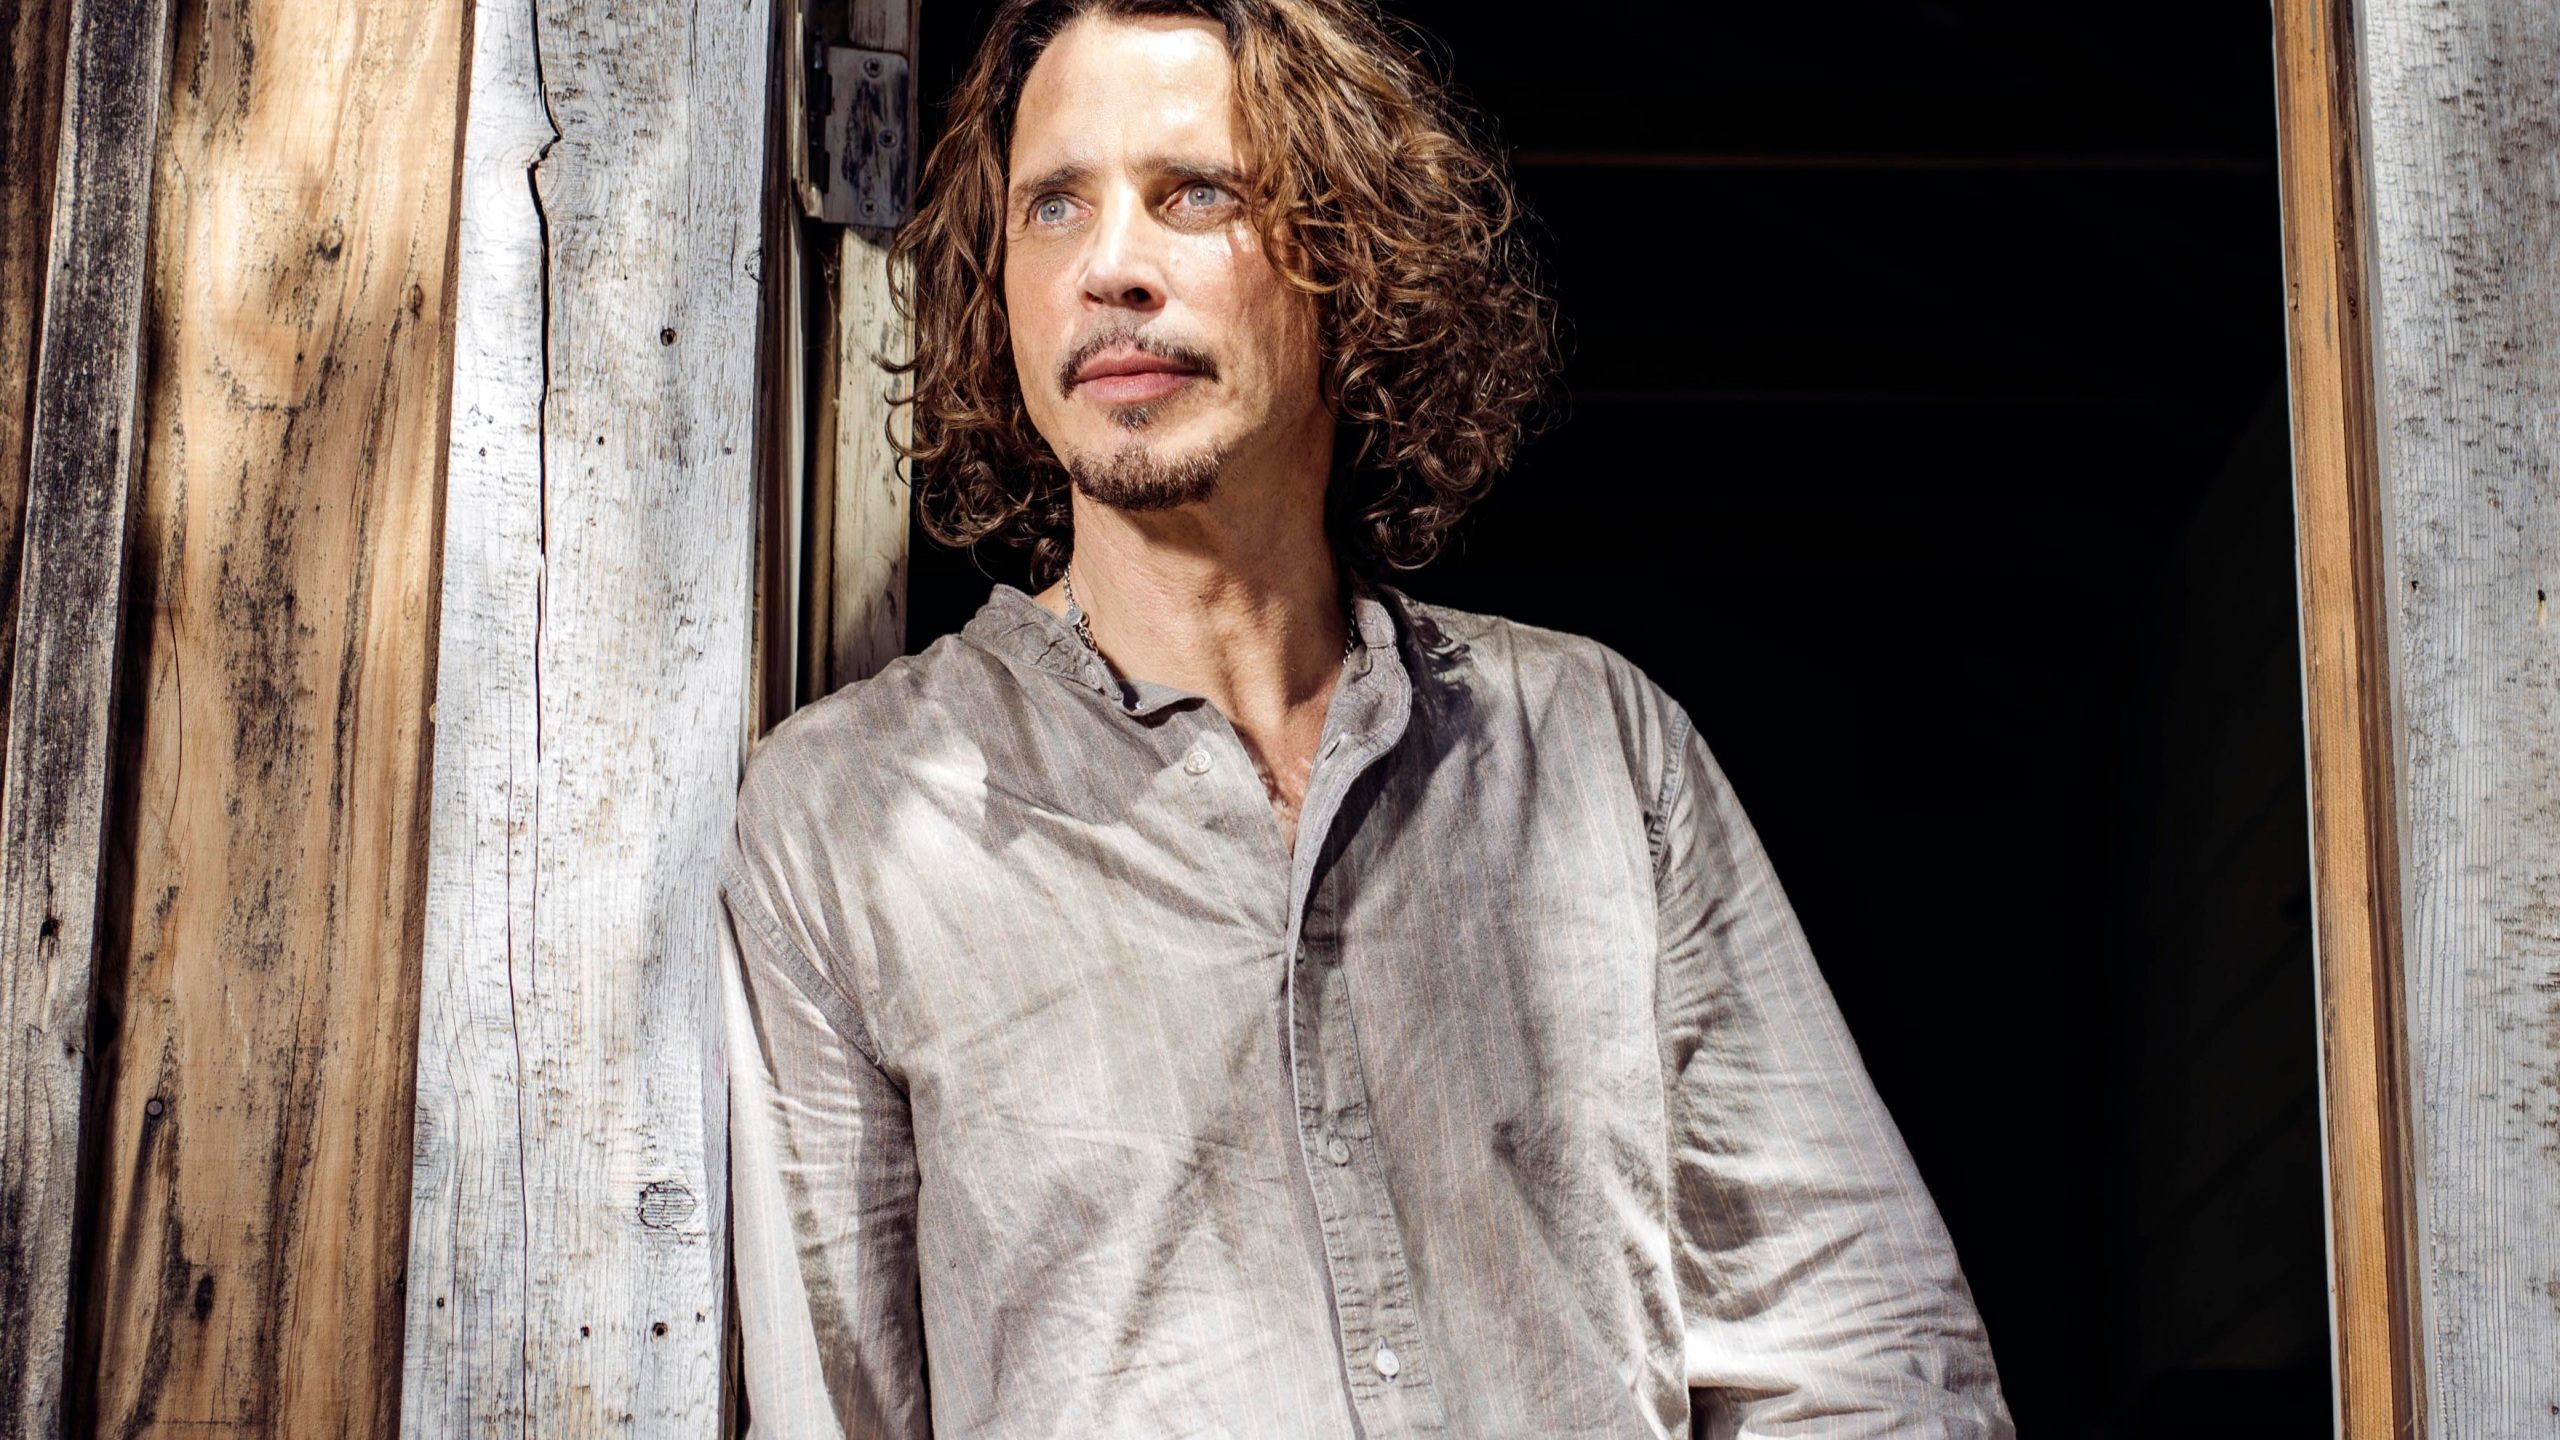 Chris_Cornell-Death_03930-159532.jpg28315932